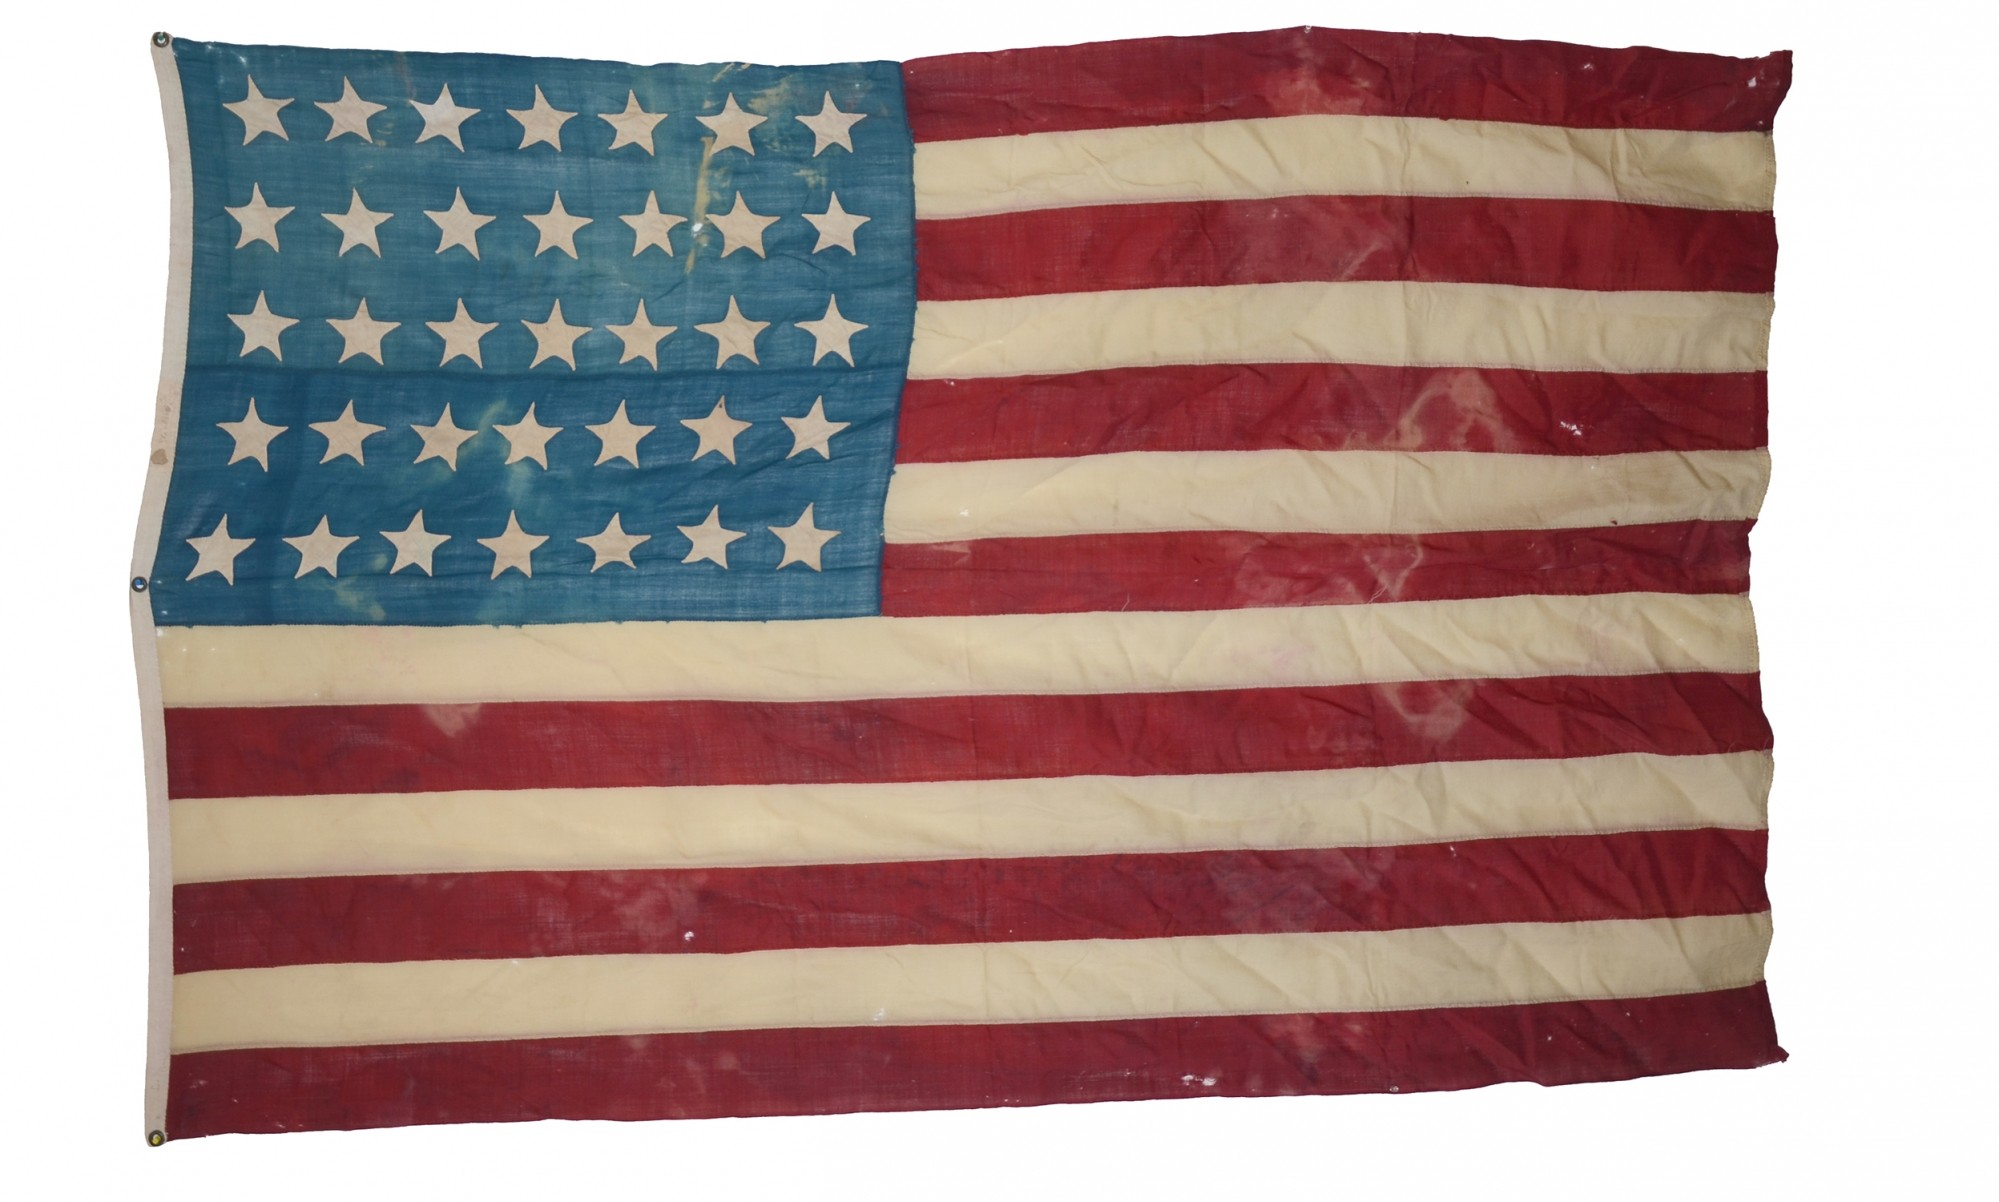 CIVIL WAR 35 STAR US FLAG ID'D TO ASSISTANT SURGEON OF 1ST LOUISIANA (NEW ORLEANS) INFANTRY